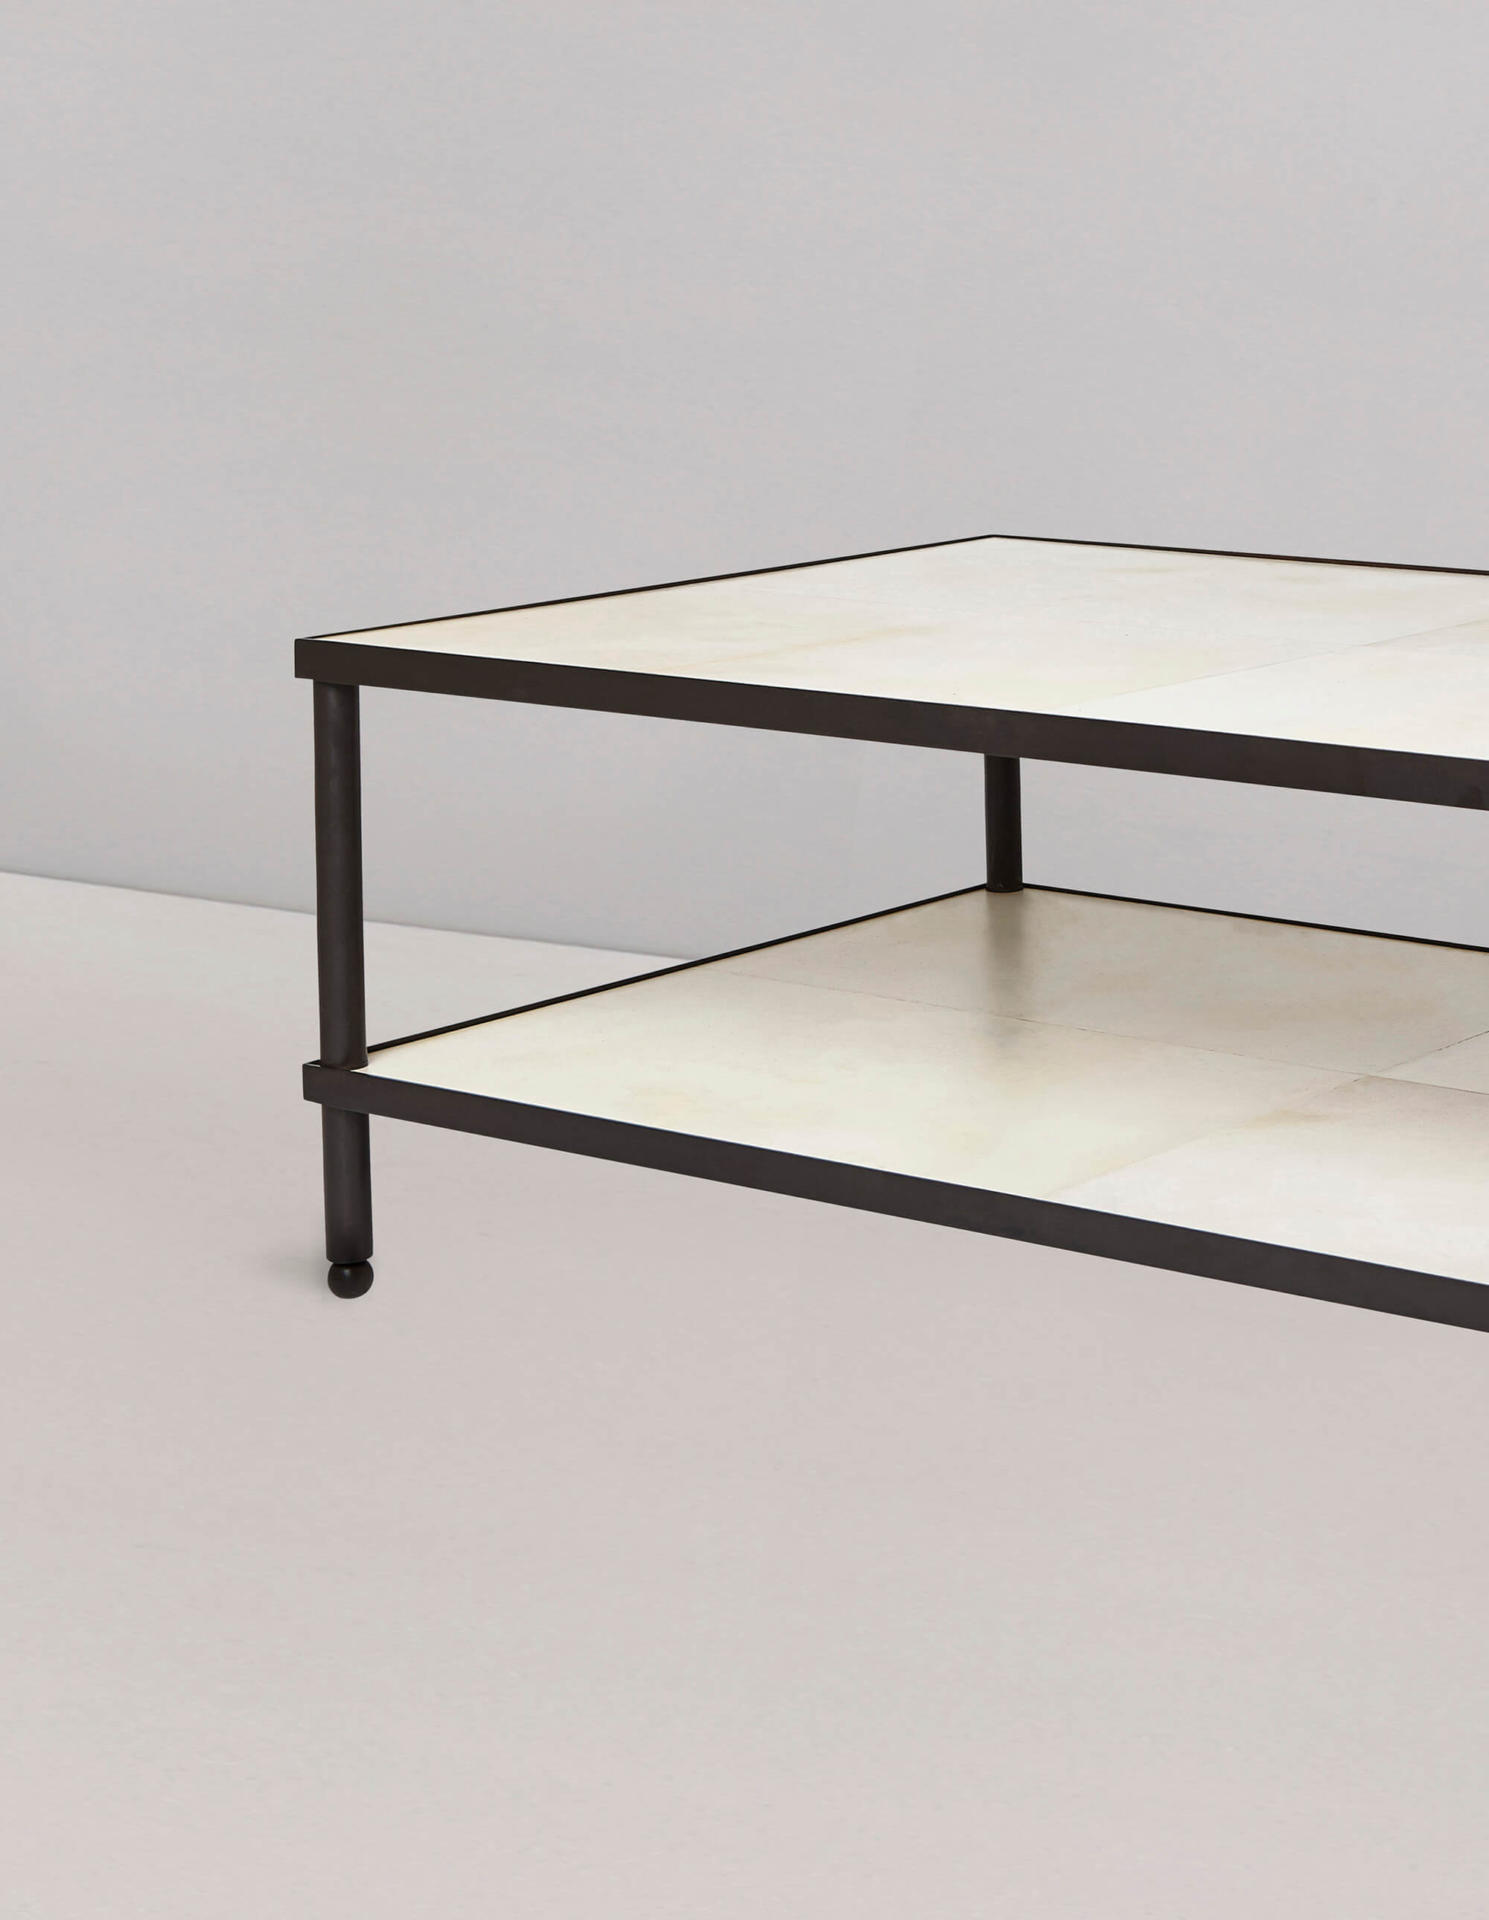 bronze coffee table by Collier Webb